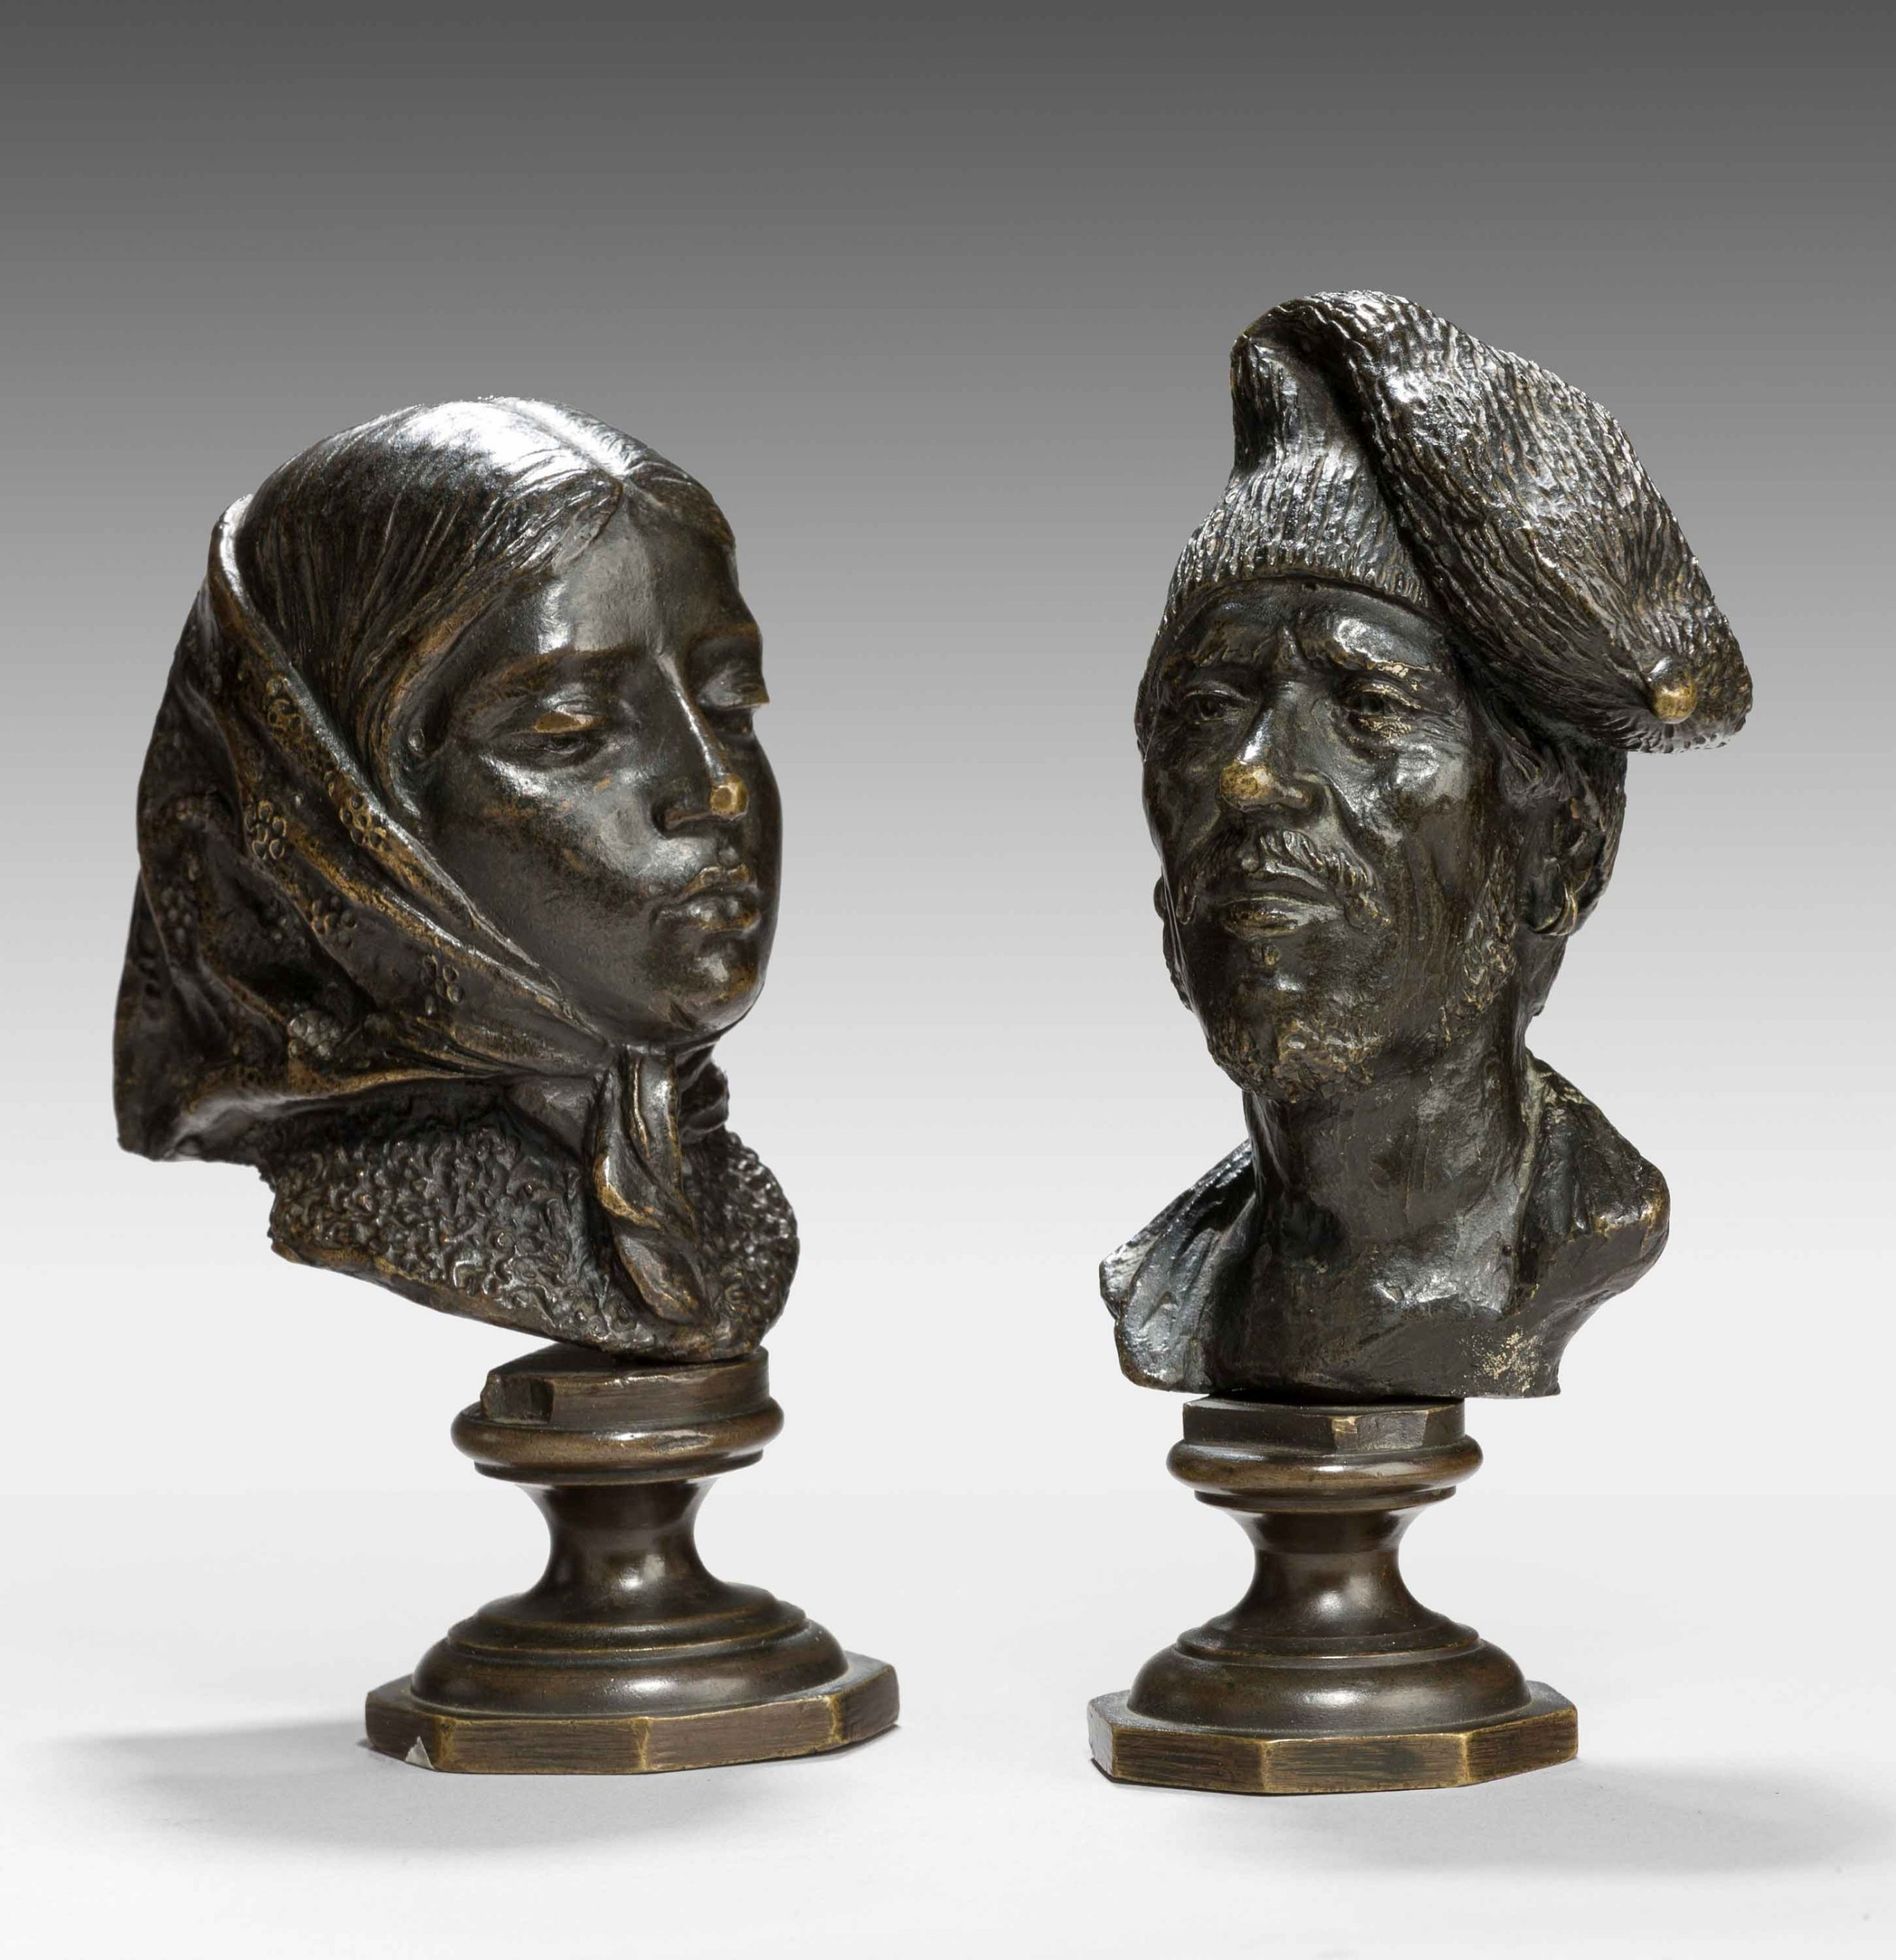 pair of mid 19th century french desk bronzes